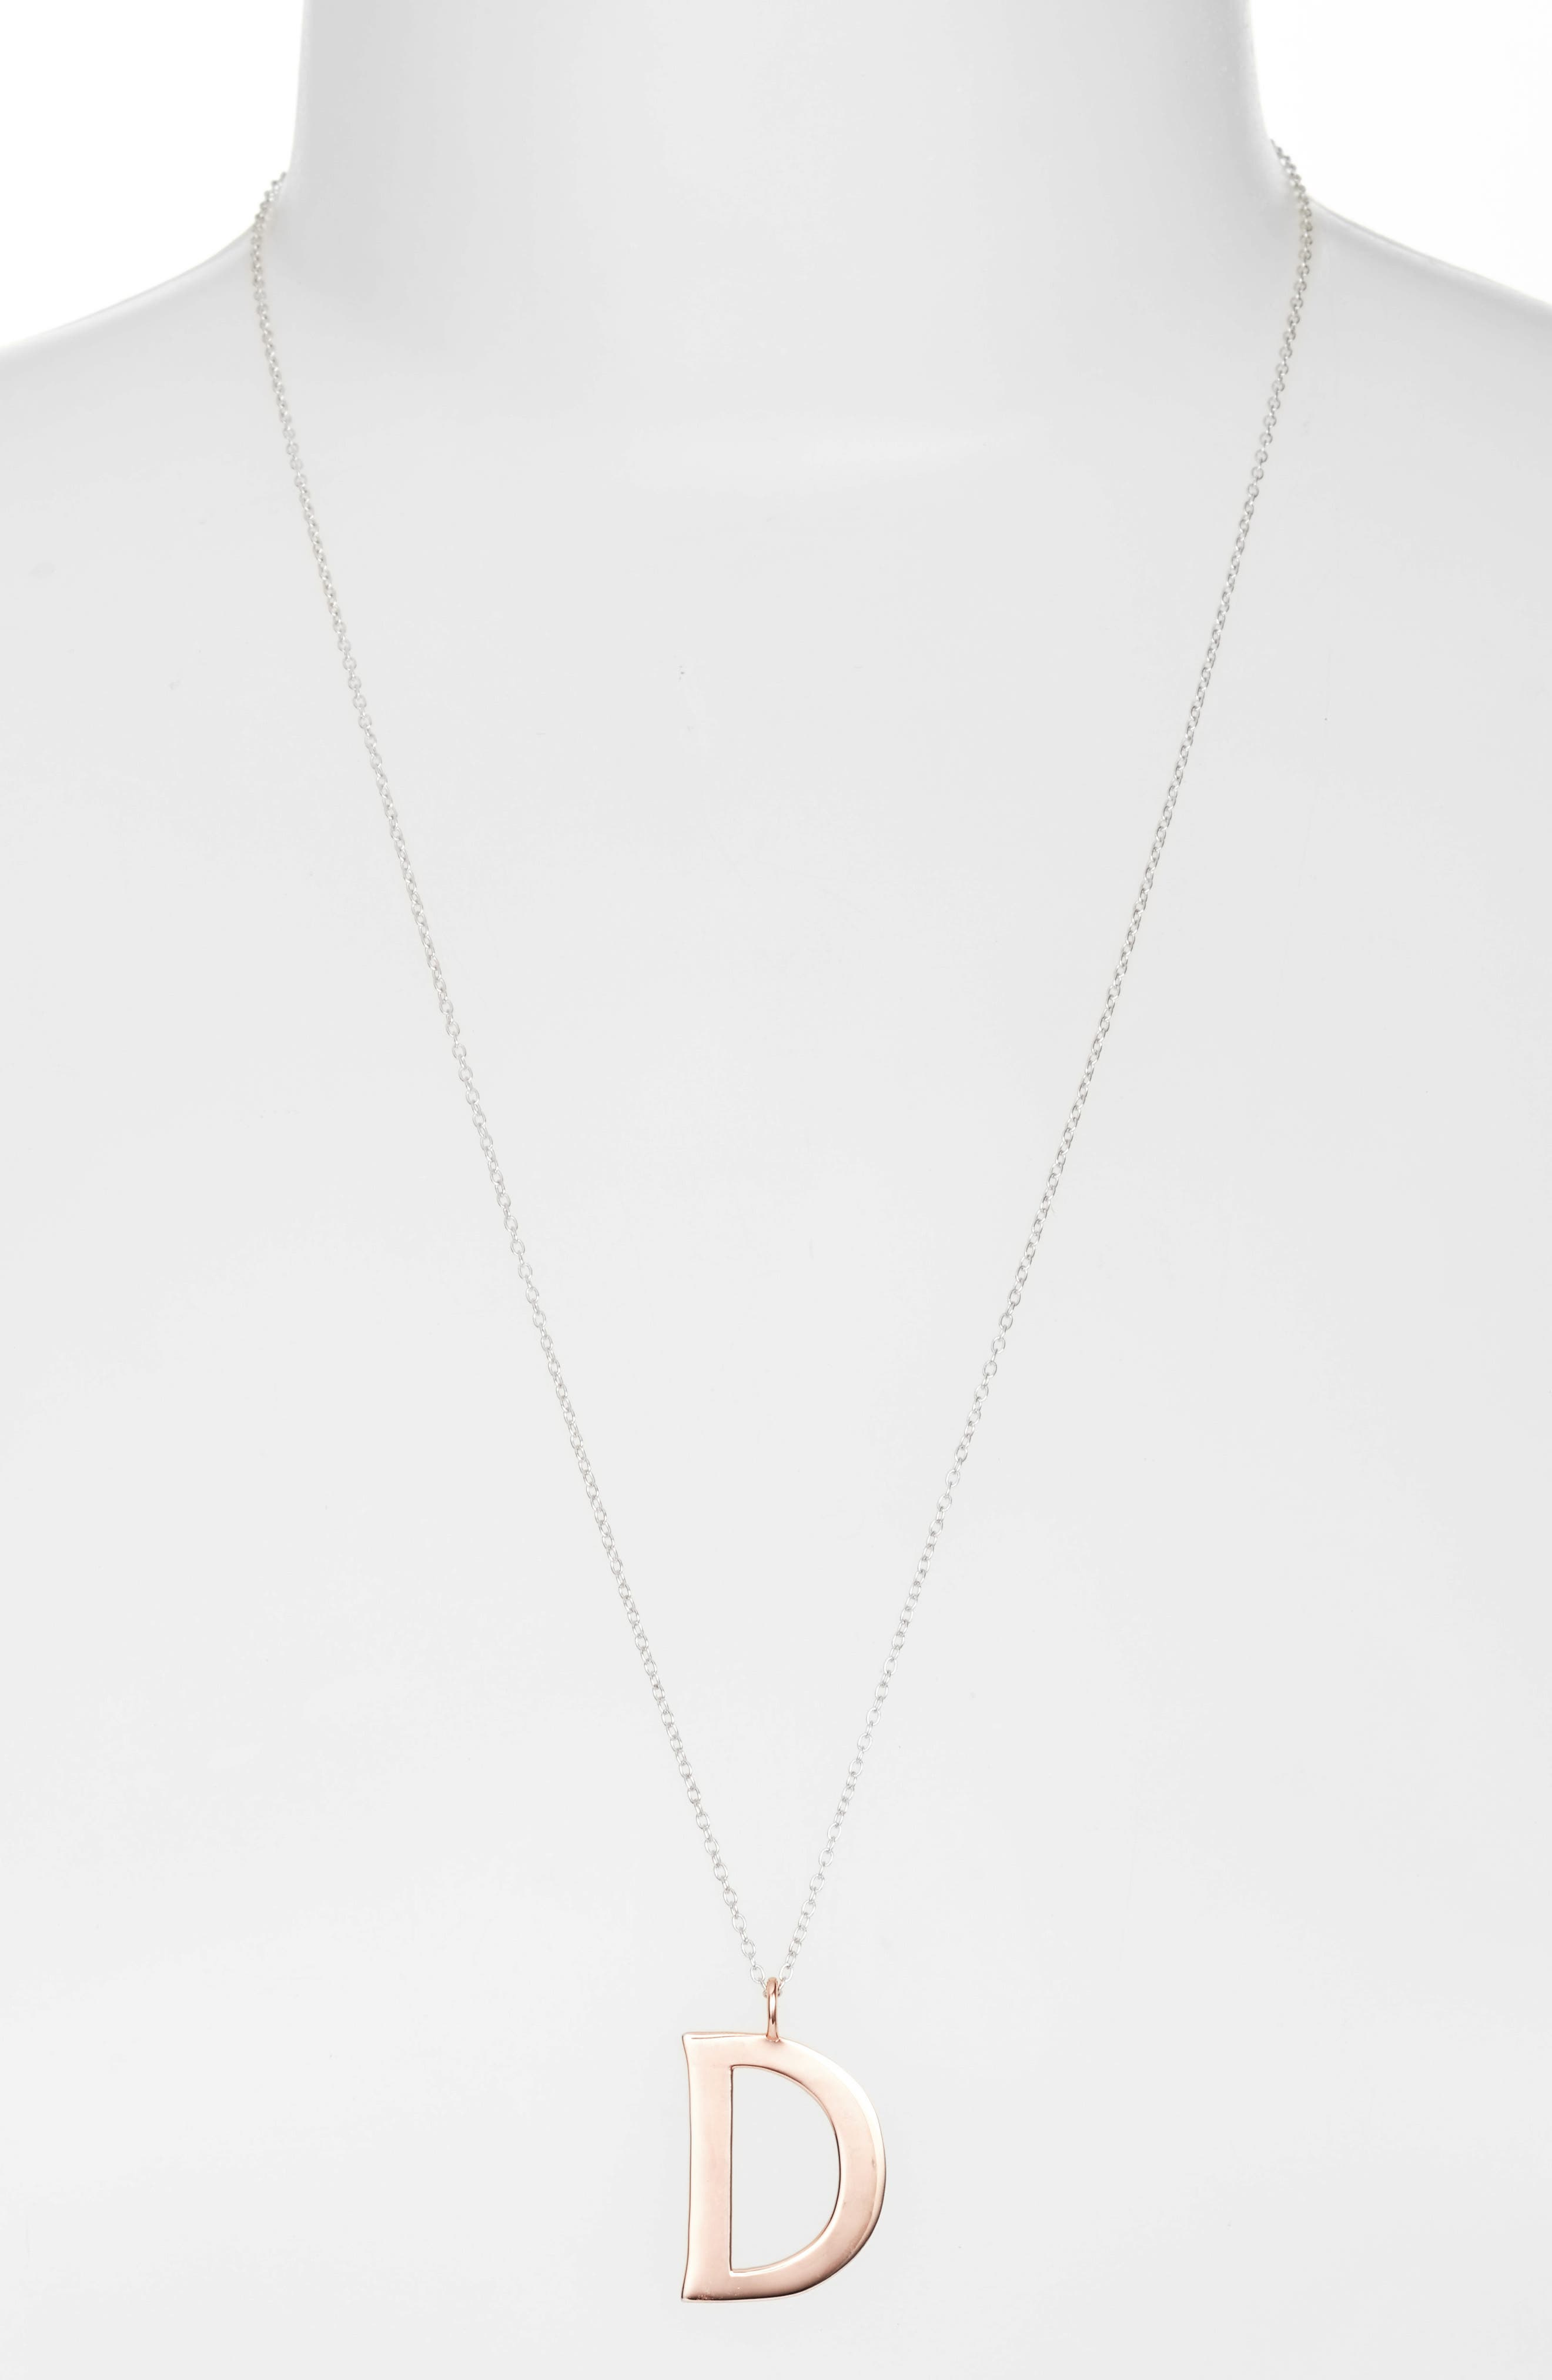 Initial Pendant Necklace,                             Main thumbnail 1, color,                             Rose Gold / Silver - D